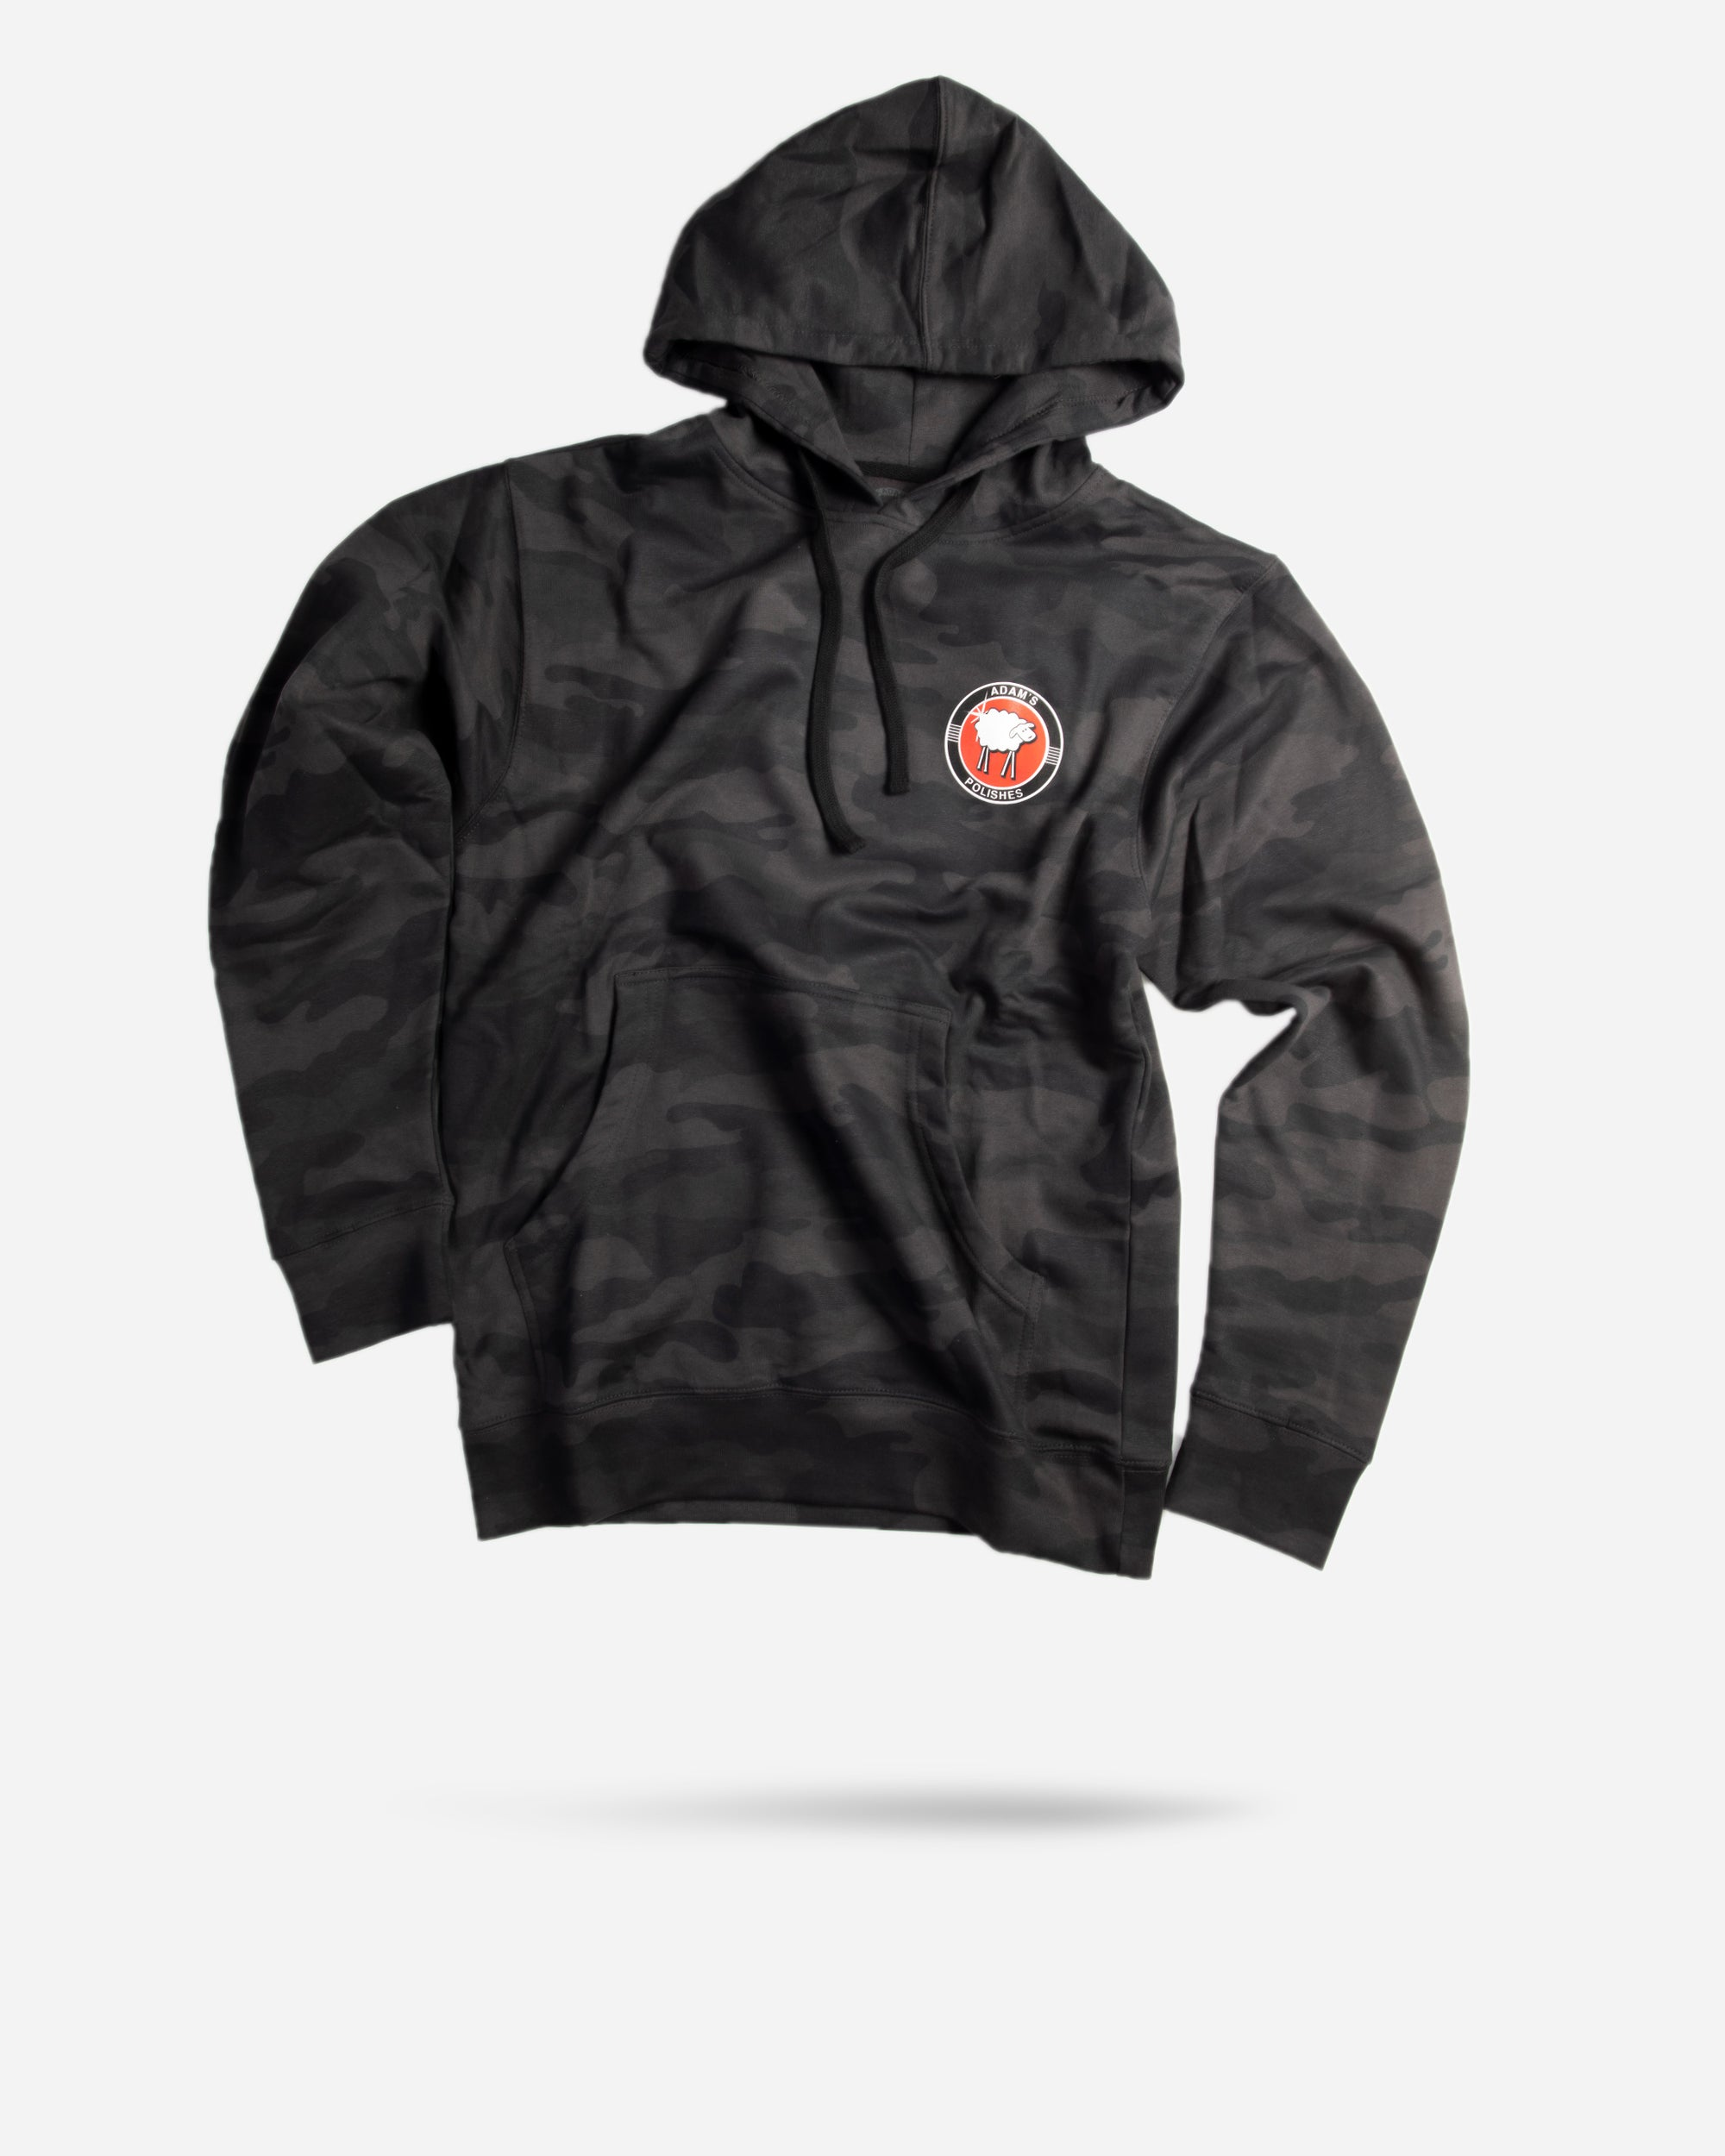 Sheepey Race X Adam's Polishes Black Camo Hoodie